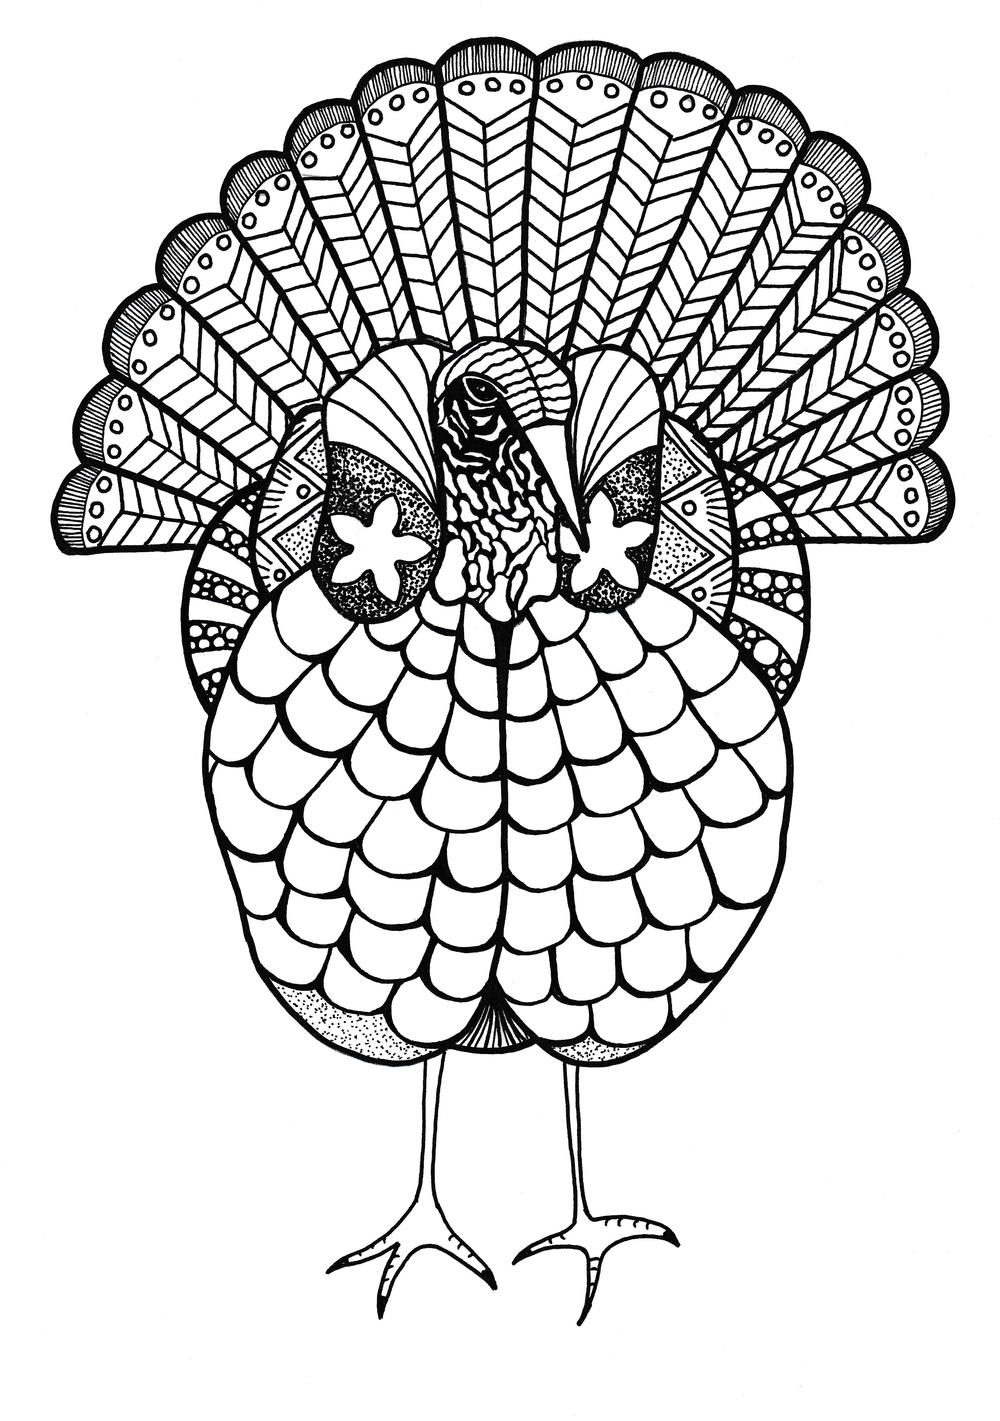 coloring sheet for adults hard coloring pages for adults best coloring pages for kids for adults sheet coloring